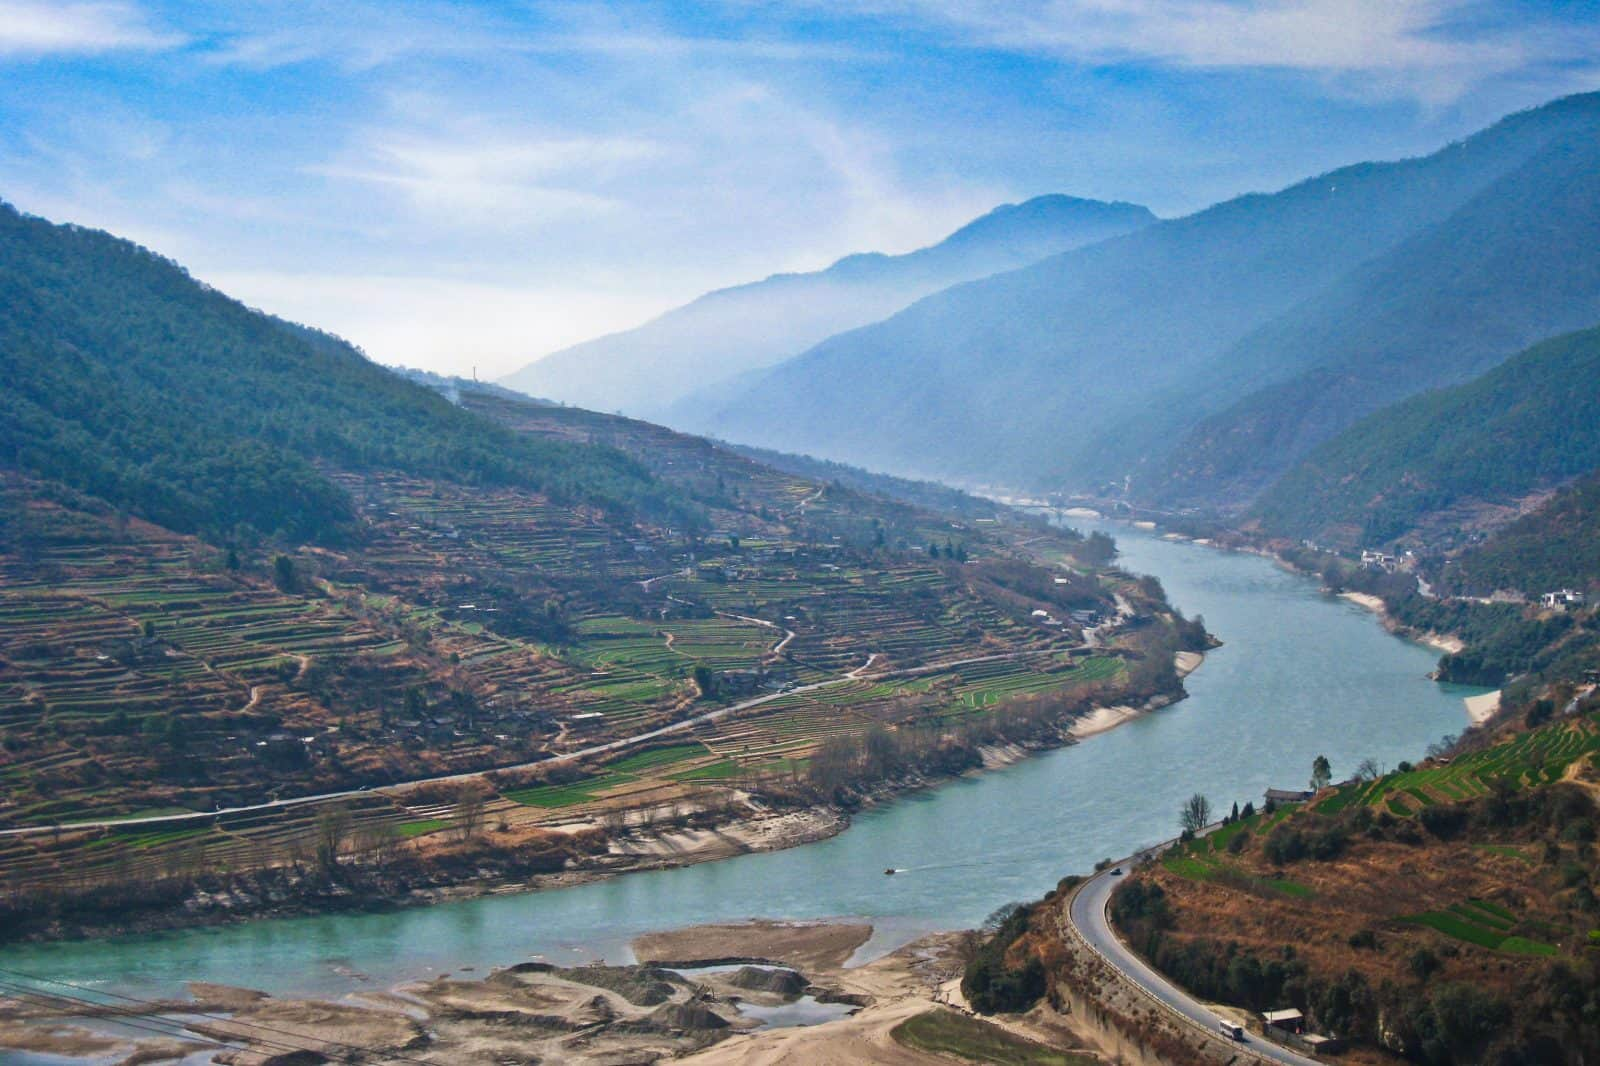 Jinsha River at the beginning of Tiger Leaping Gorge